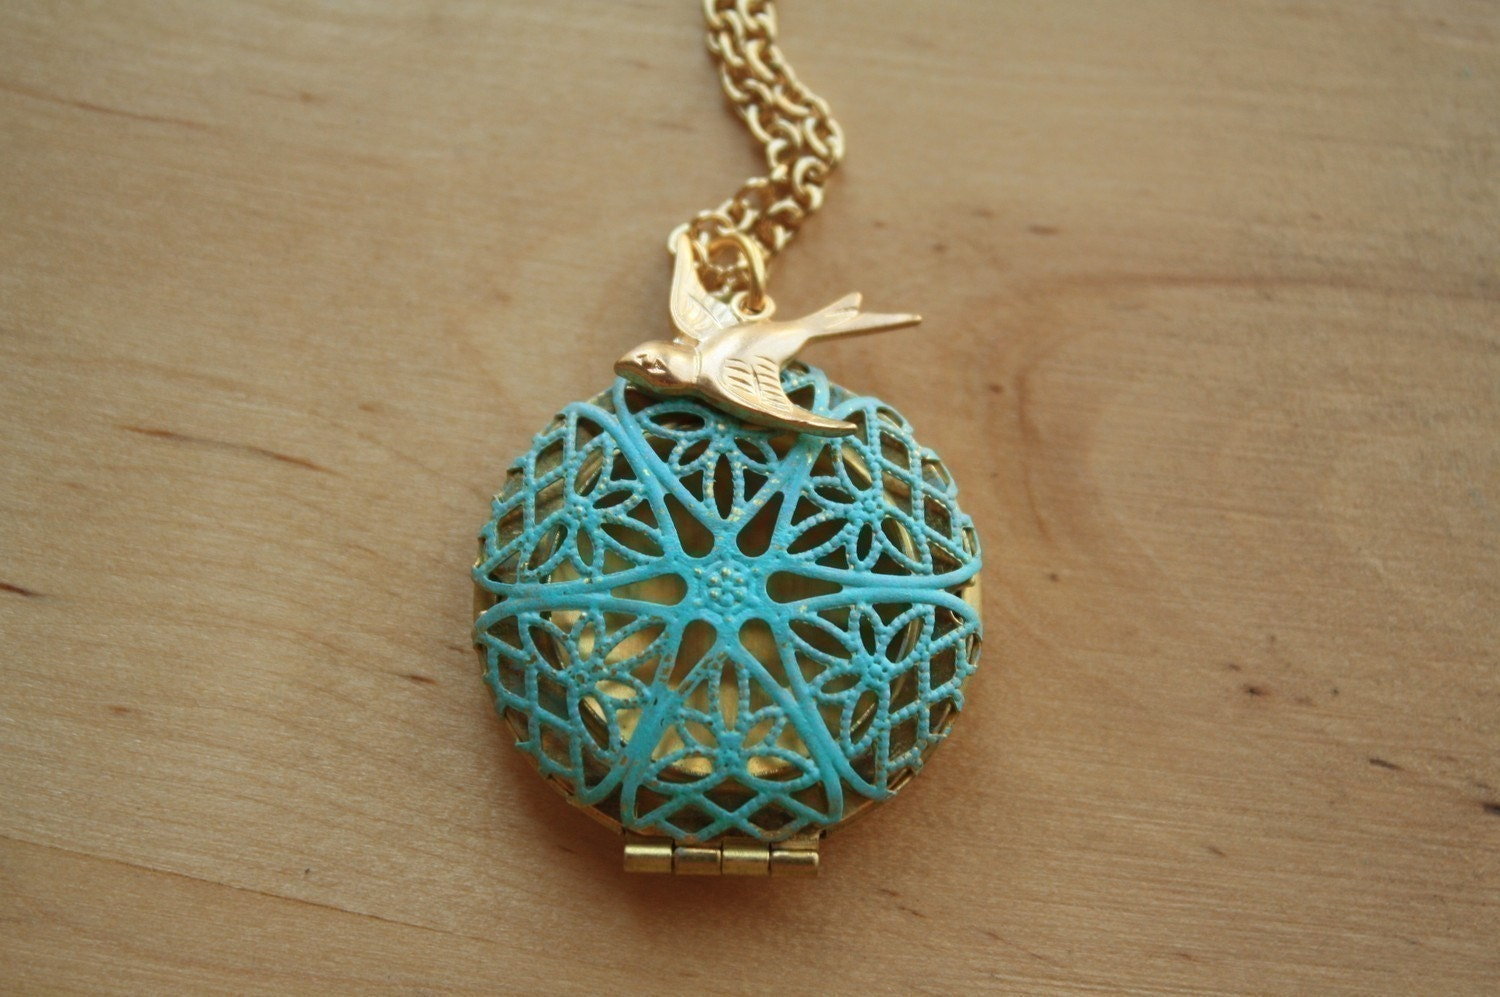 Blue Filigree Locket, Long Fashion Pendant Necklace, Gold Bird Charm, Two Tone Metal Jewelry, Unique Jewellery, Round, Transparent - FreshyFig